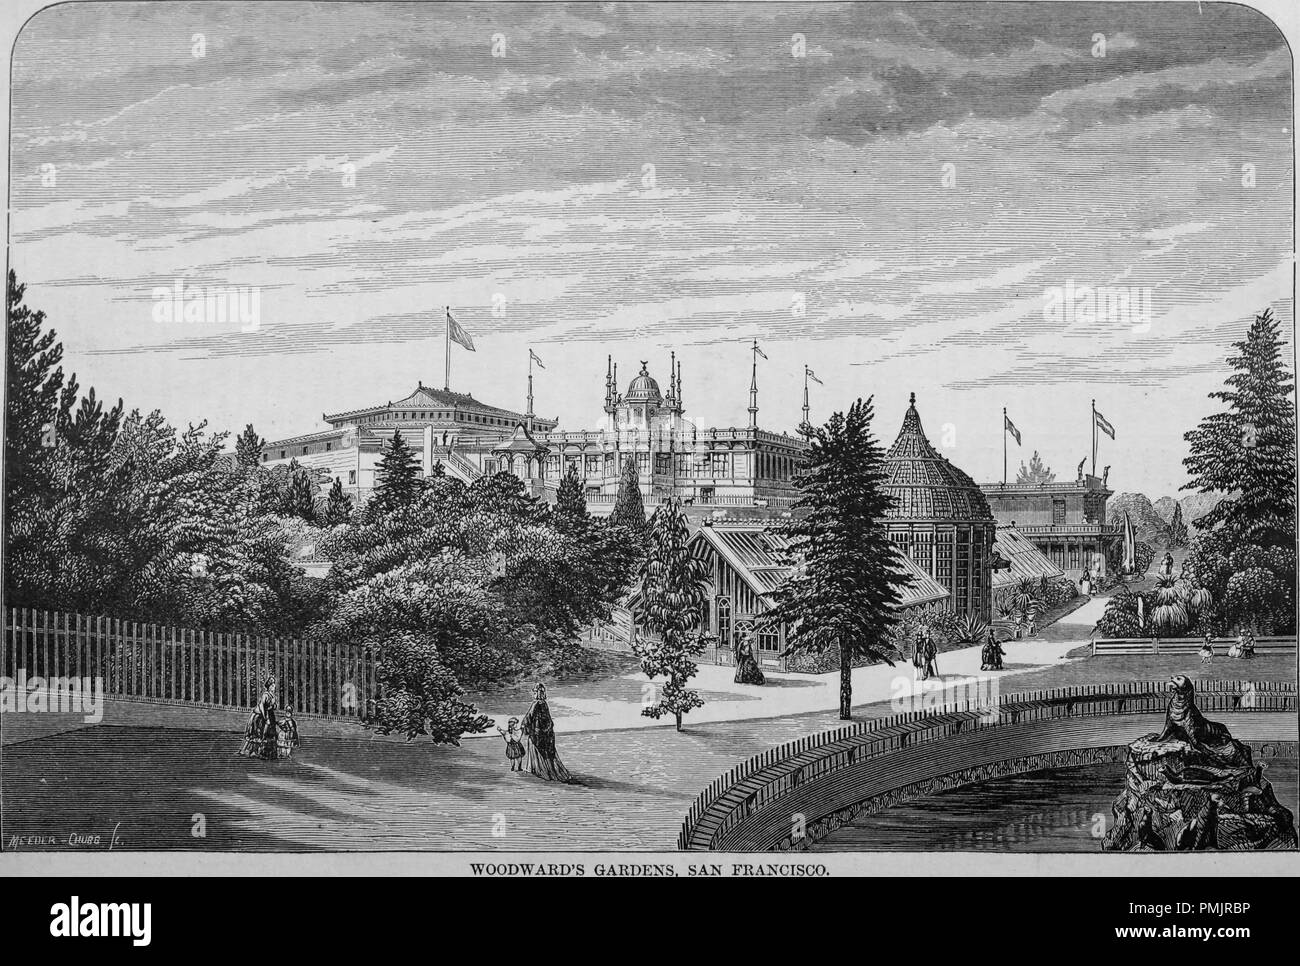 Engraving of the Woodward's Garden in San Francisco, California, from the book 'The Pacific tourist', 1877. Courtesy Internet Archive. () - Stock Image